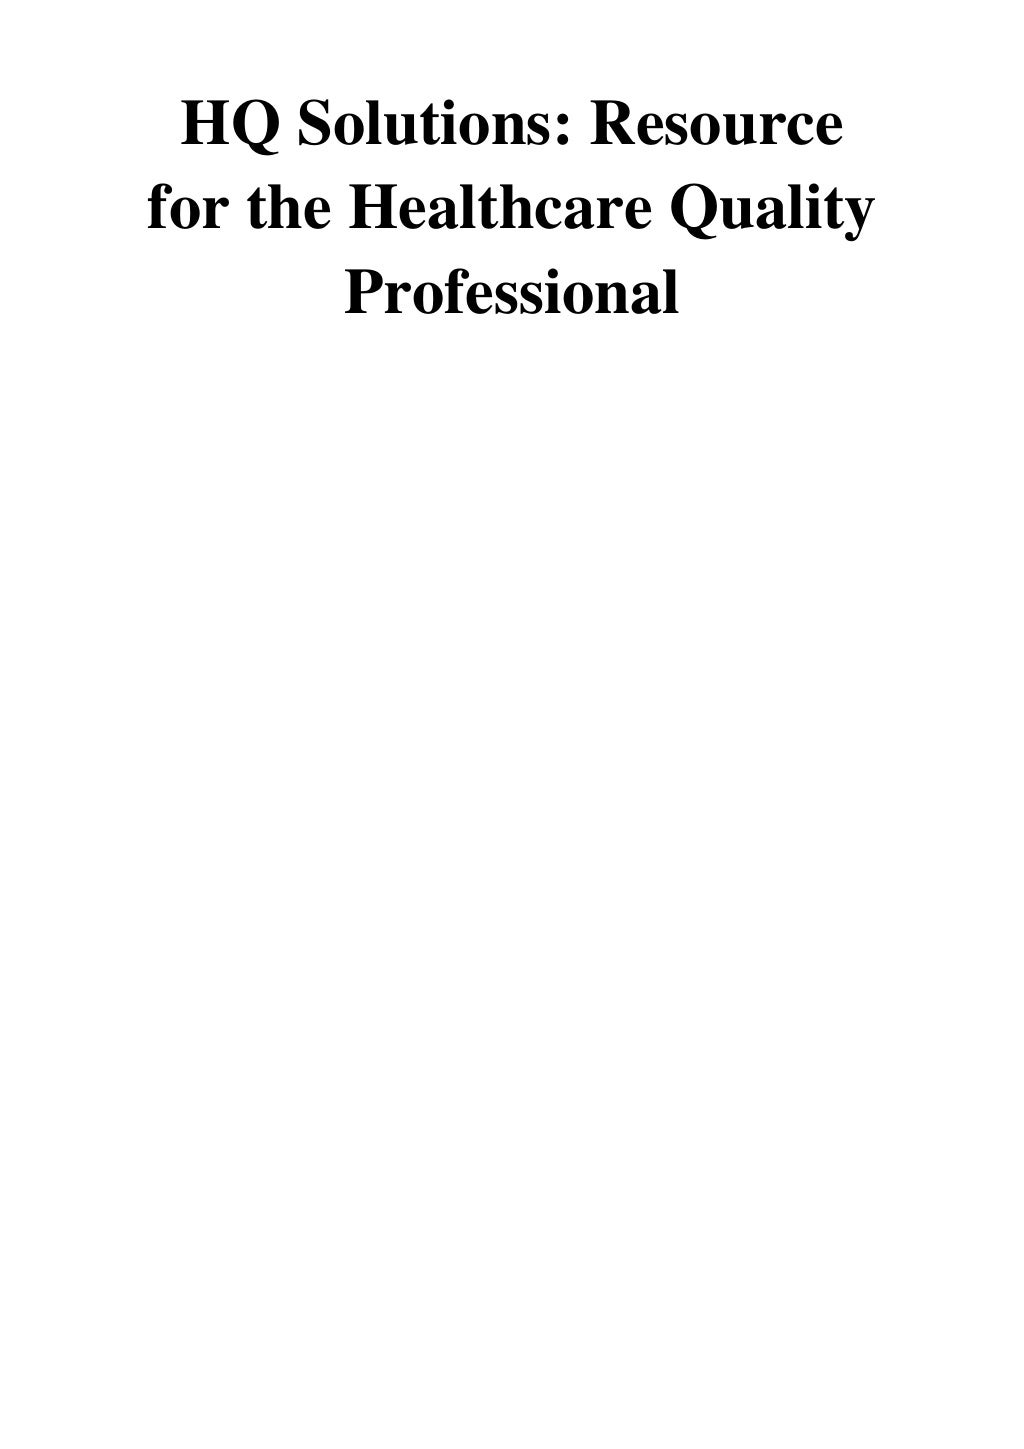 (2017) HQ Solutions (PDF) Resource for the Healthcare Quality Profes… page 2